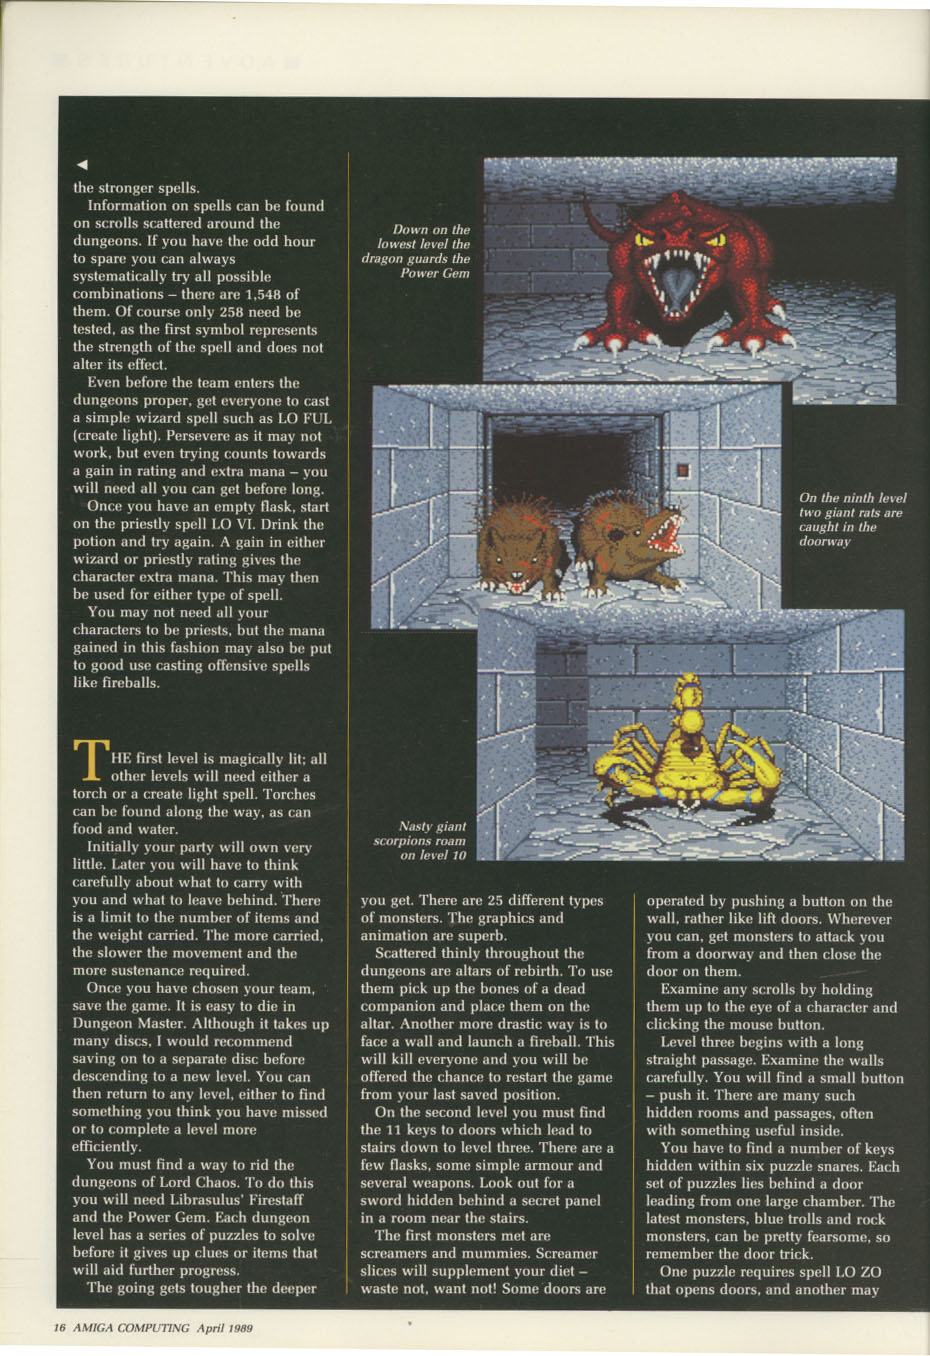 Dungeon Master for Amiga Review published in British / American magazine 'Amiga Computing', Issue #11 (Vol. 1 No. 11), Pages 16